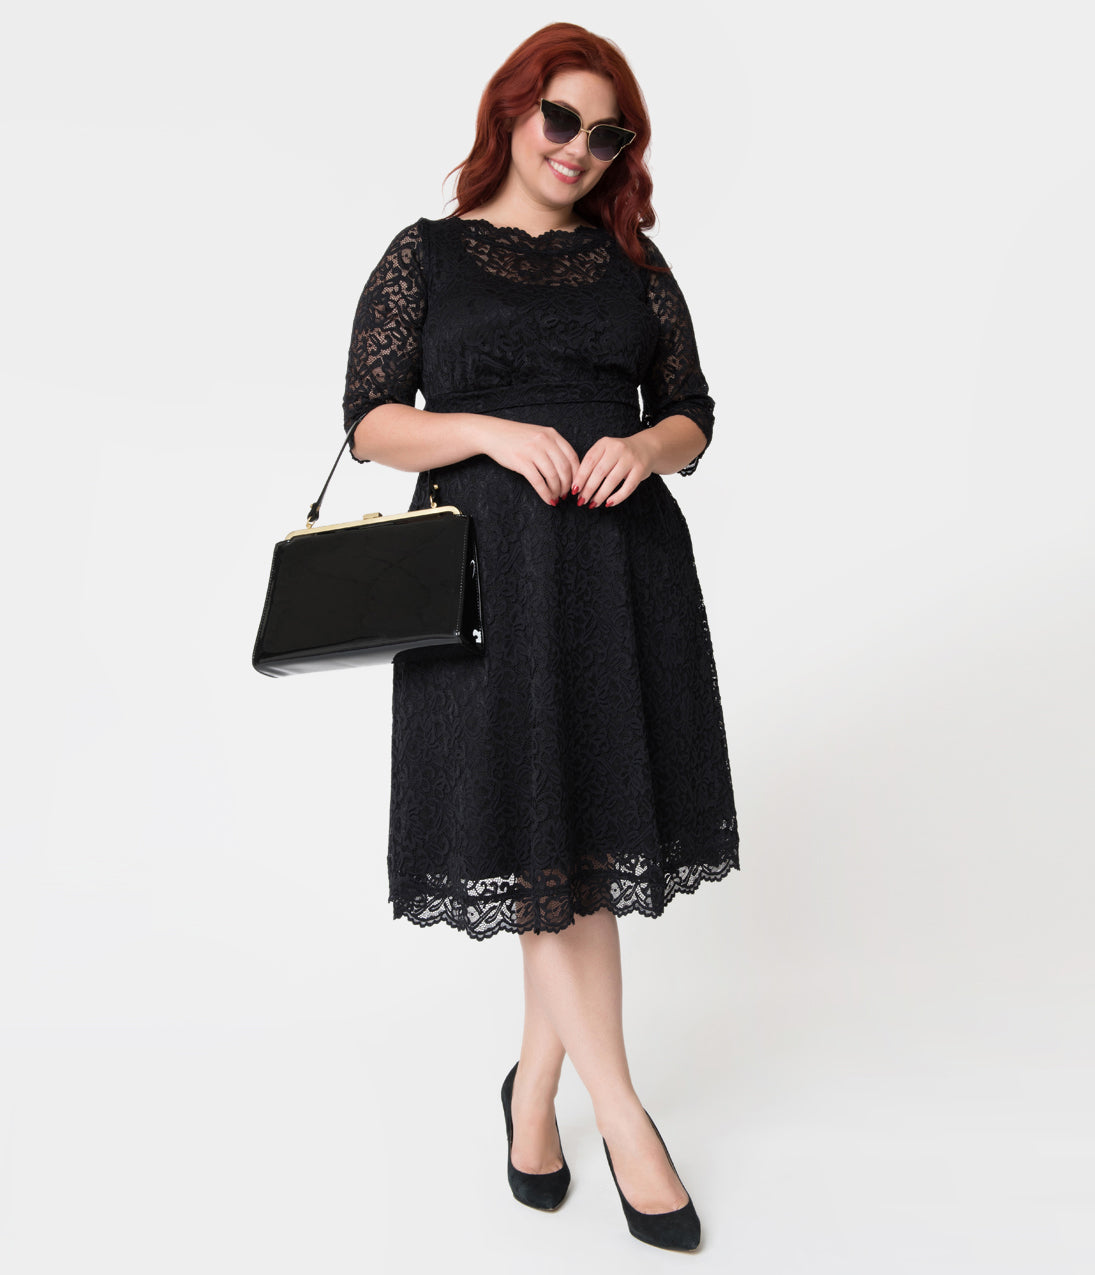 Plus Size Swing Dresses, Vintage Dresses Plus Size Onyx Floral Lace Over Lay Sleeved Lacey Cocktail Dress $118.00 AT vintagedancer.com